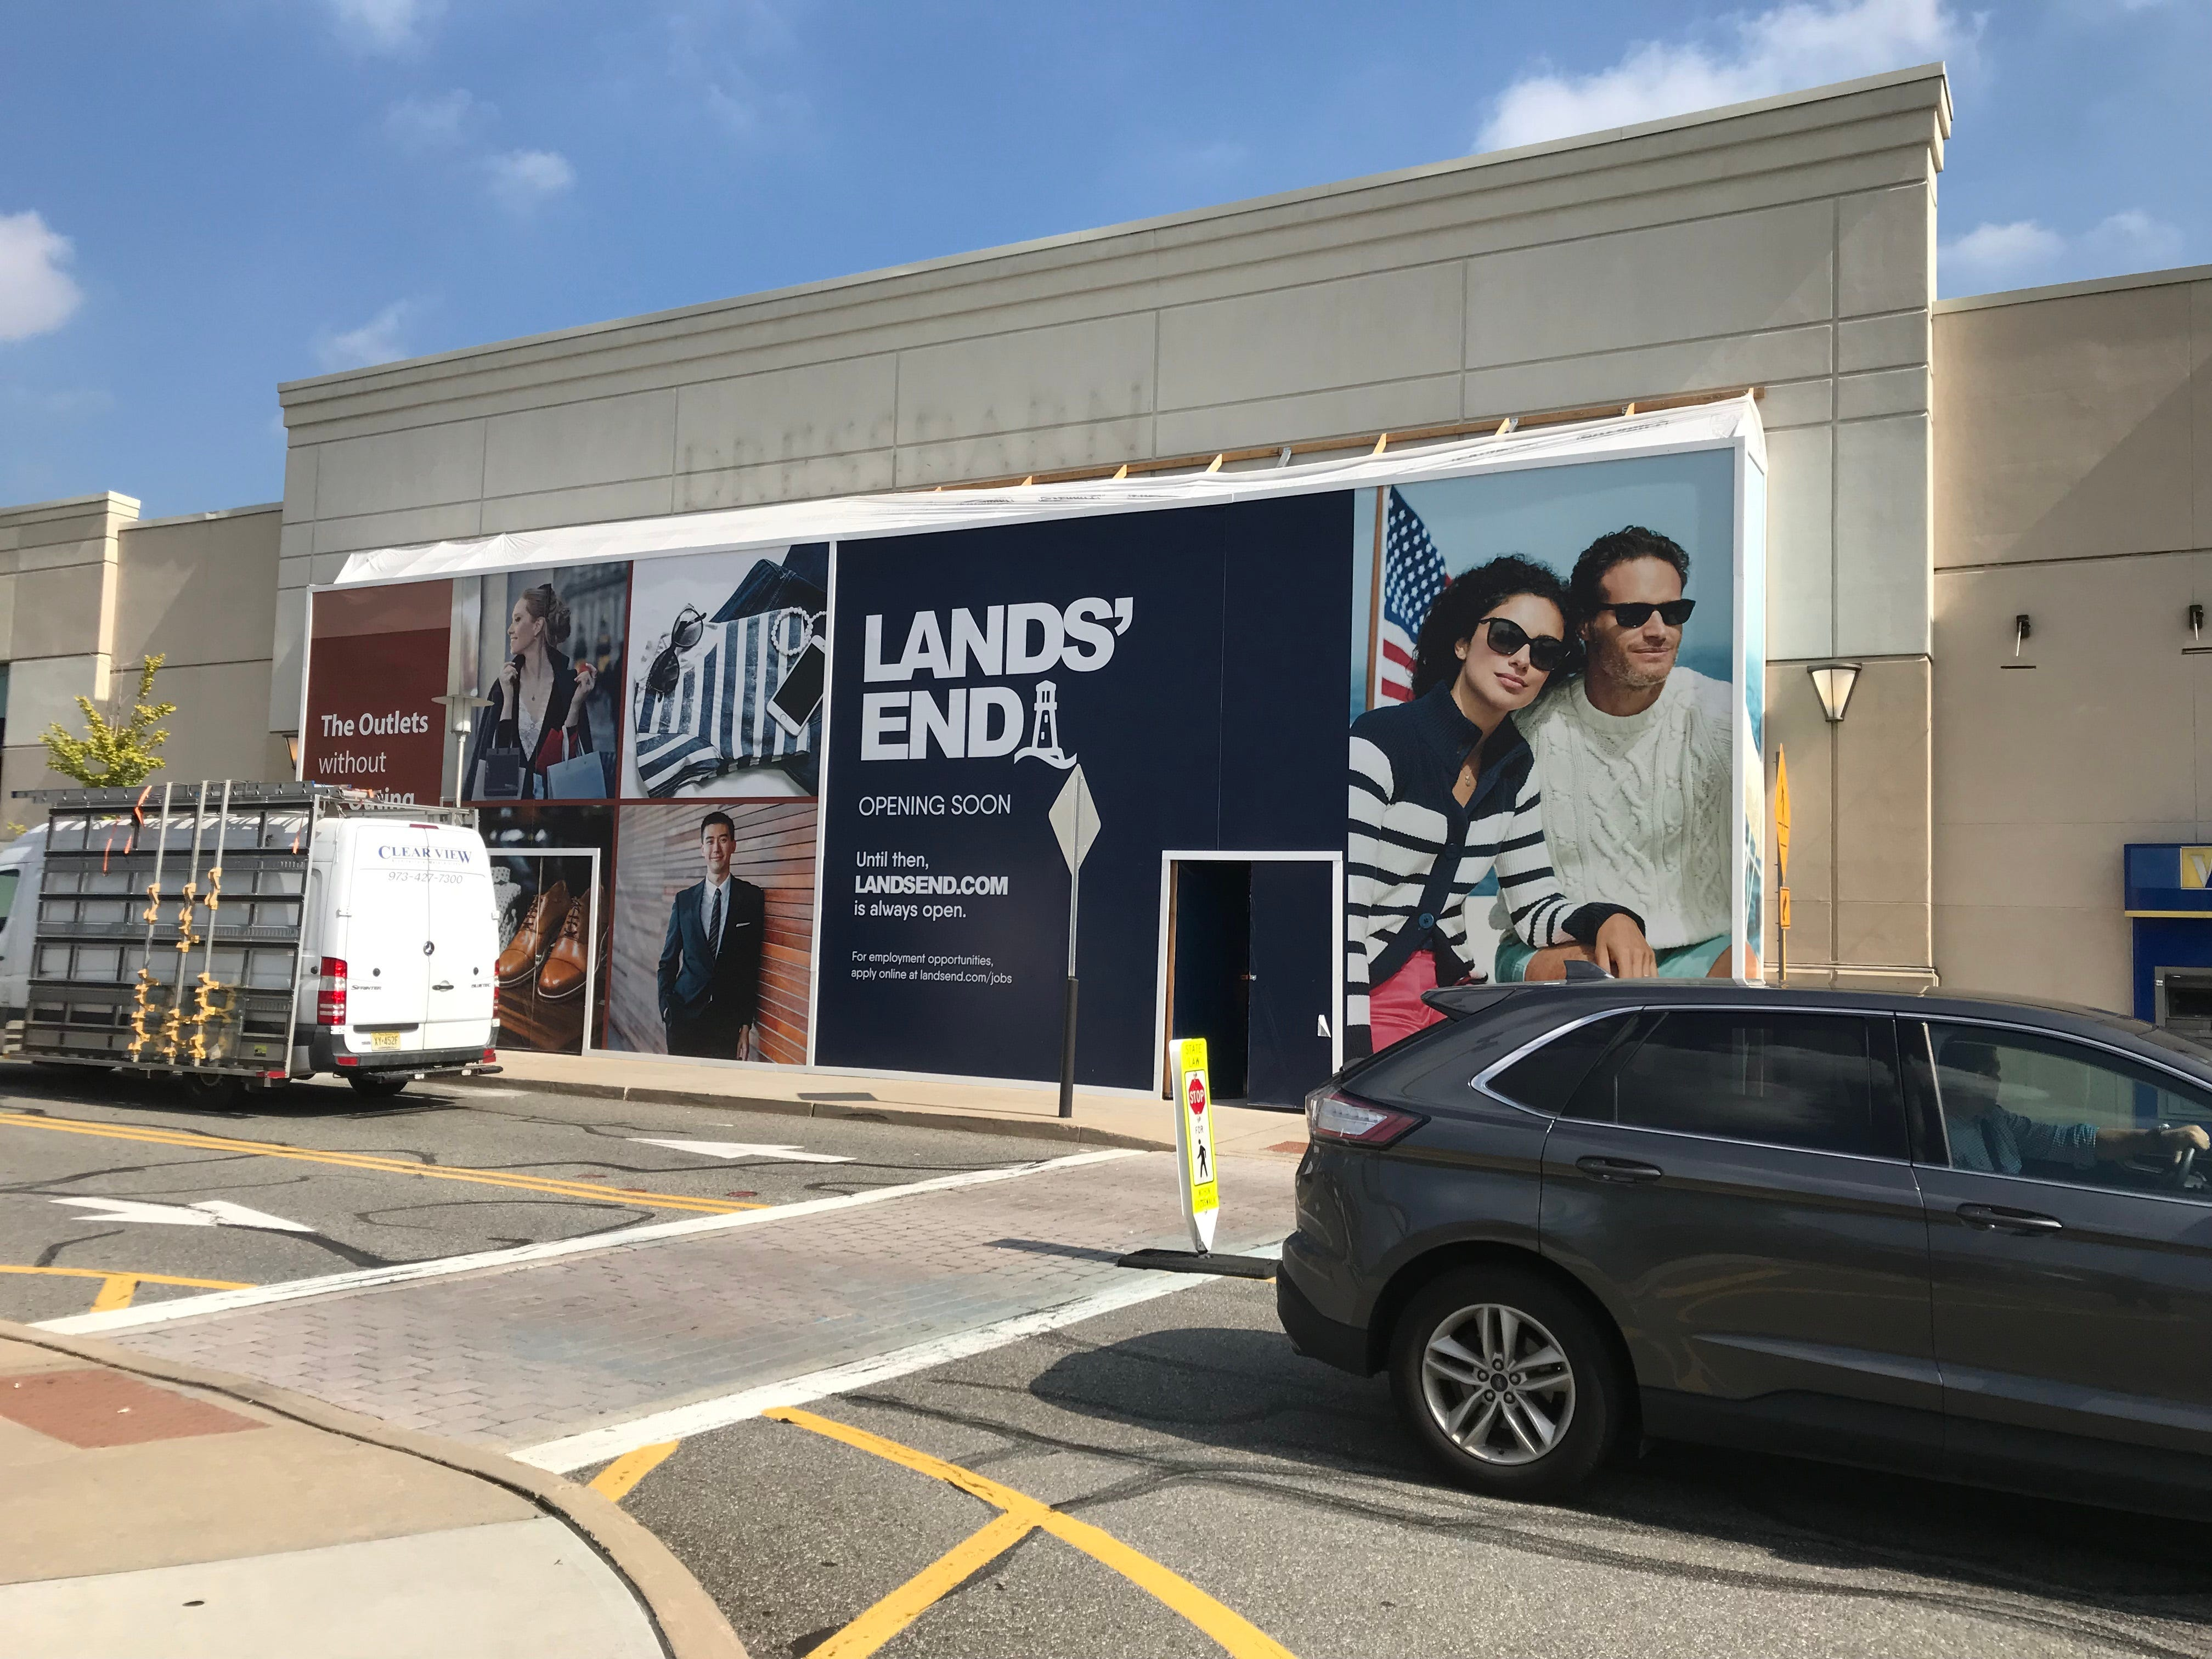 A Lands' End store is coming to Bergen Town Center in Paramus this fall.